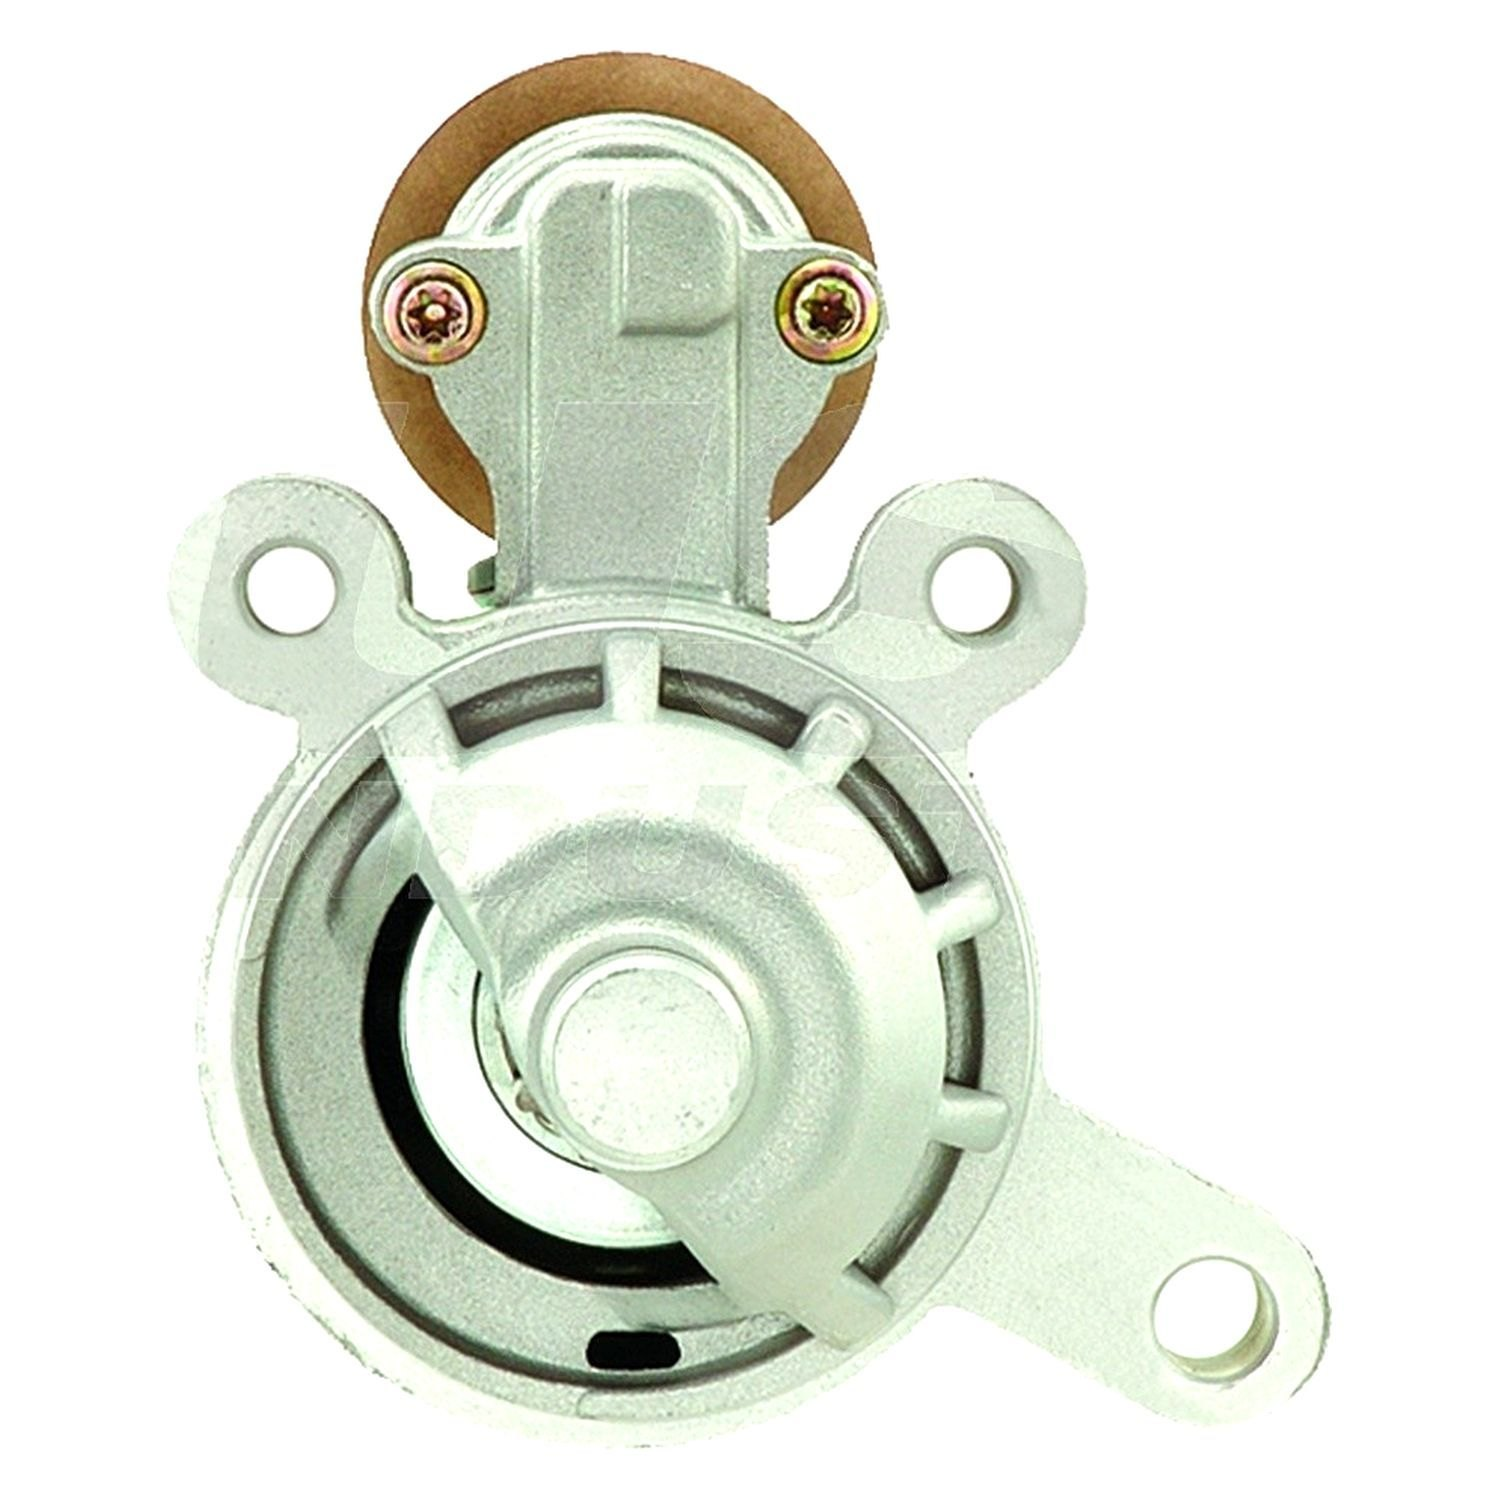 For Mercury Cougar 2000 2002 Replace 2fzw Remanufactured: Mercury Cougar 2000-2002 Remanufactured